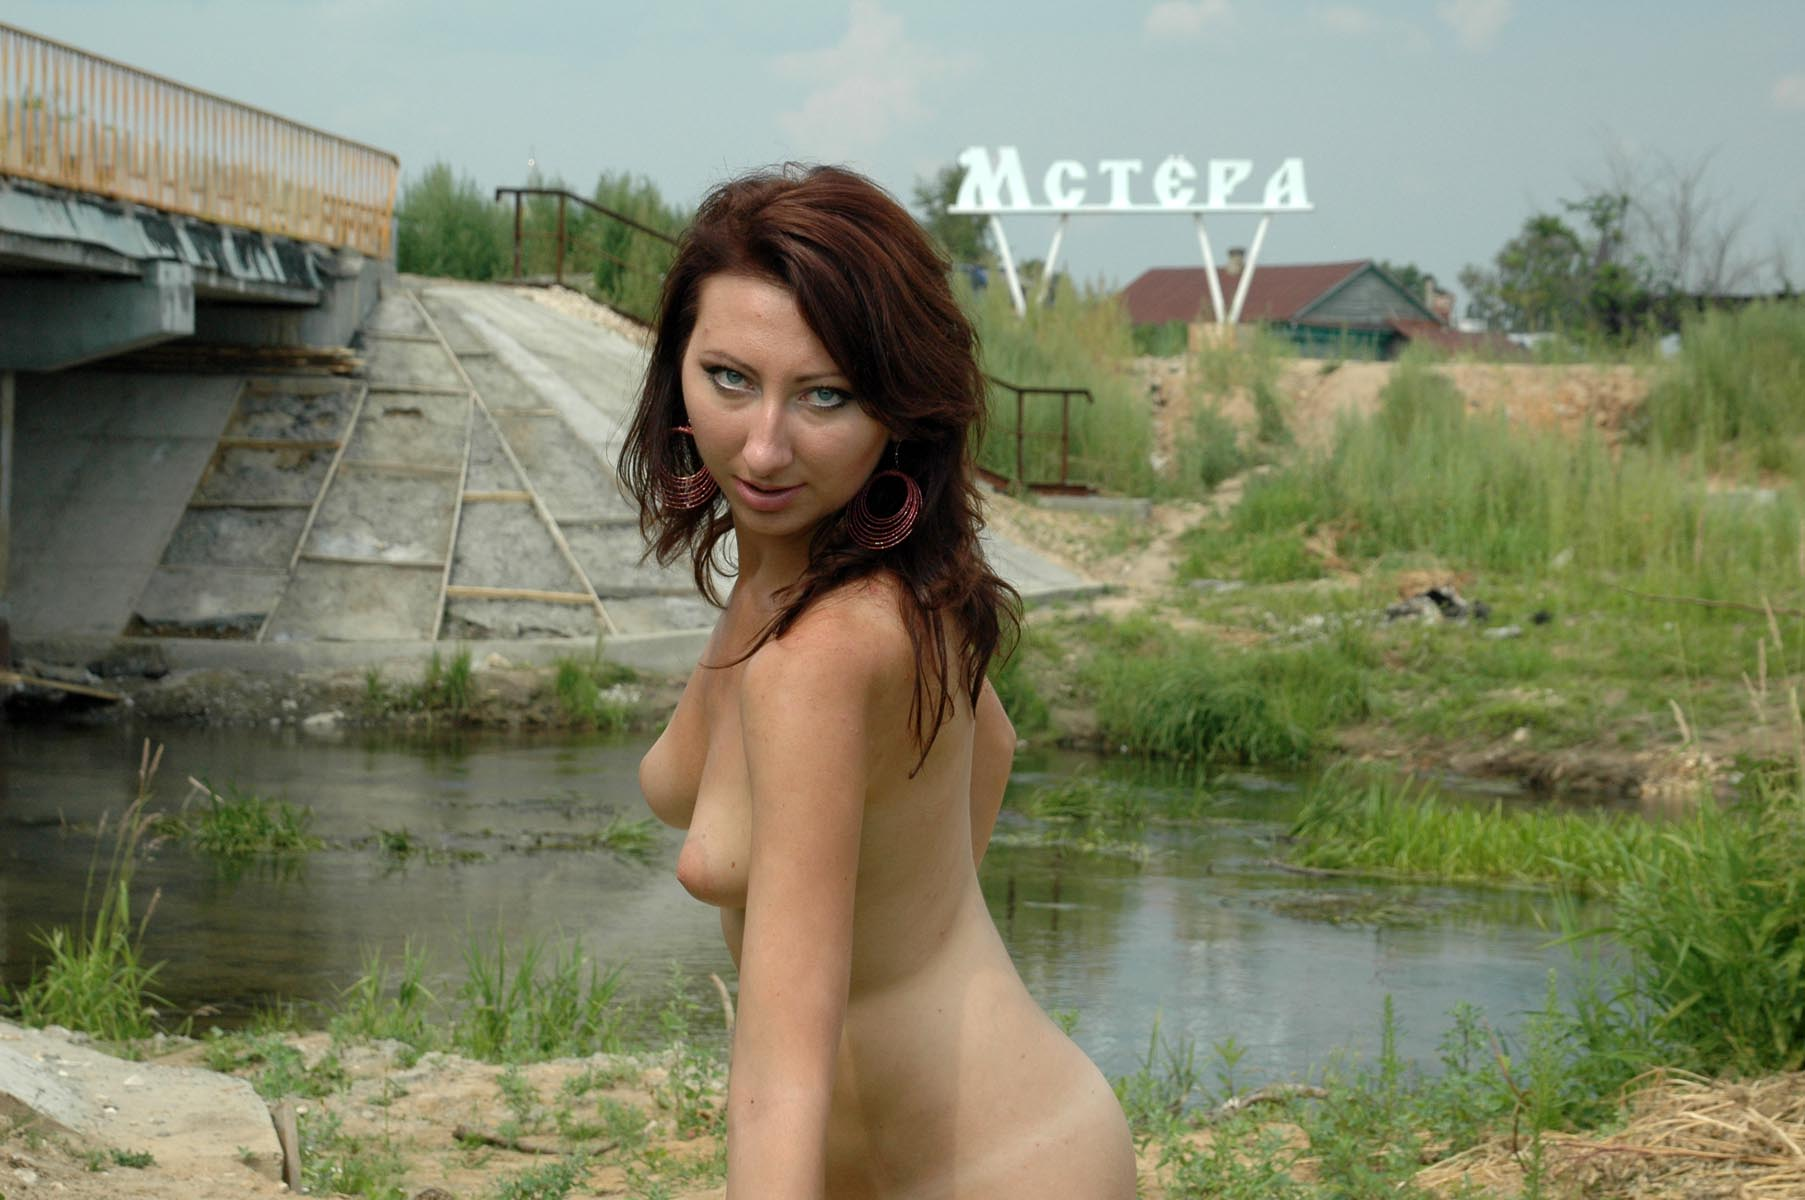 naked russian girl pusssy